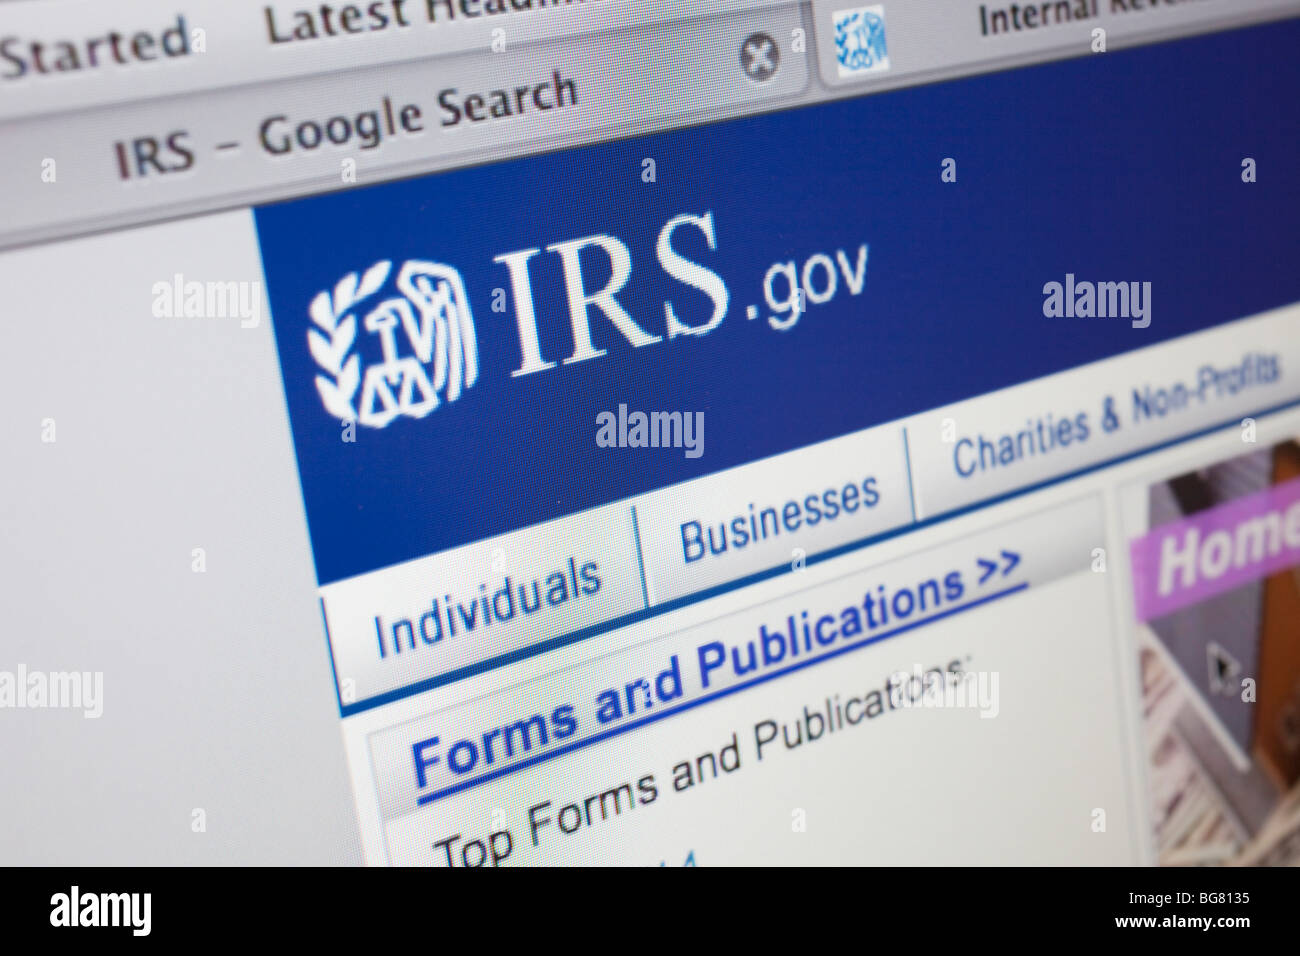 Computer Screen Showing The Website For The Irs Internal Revenue